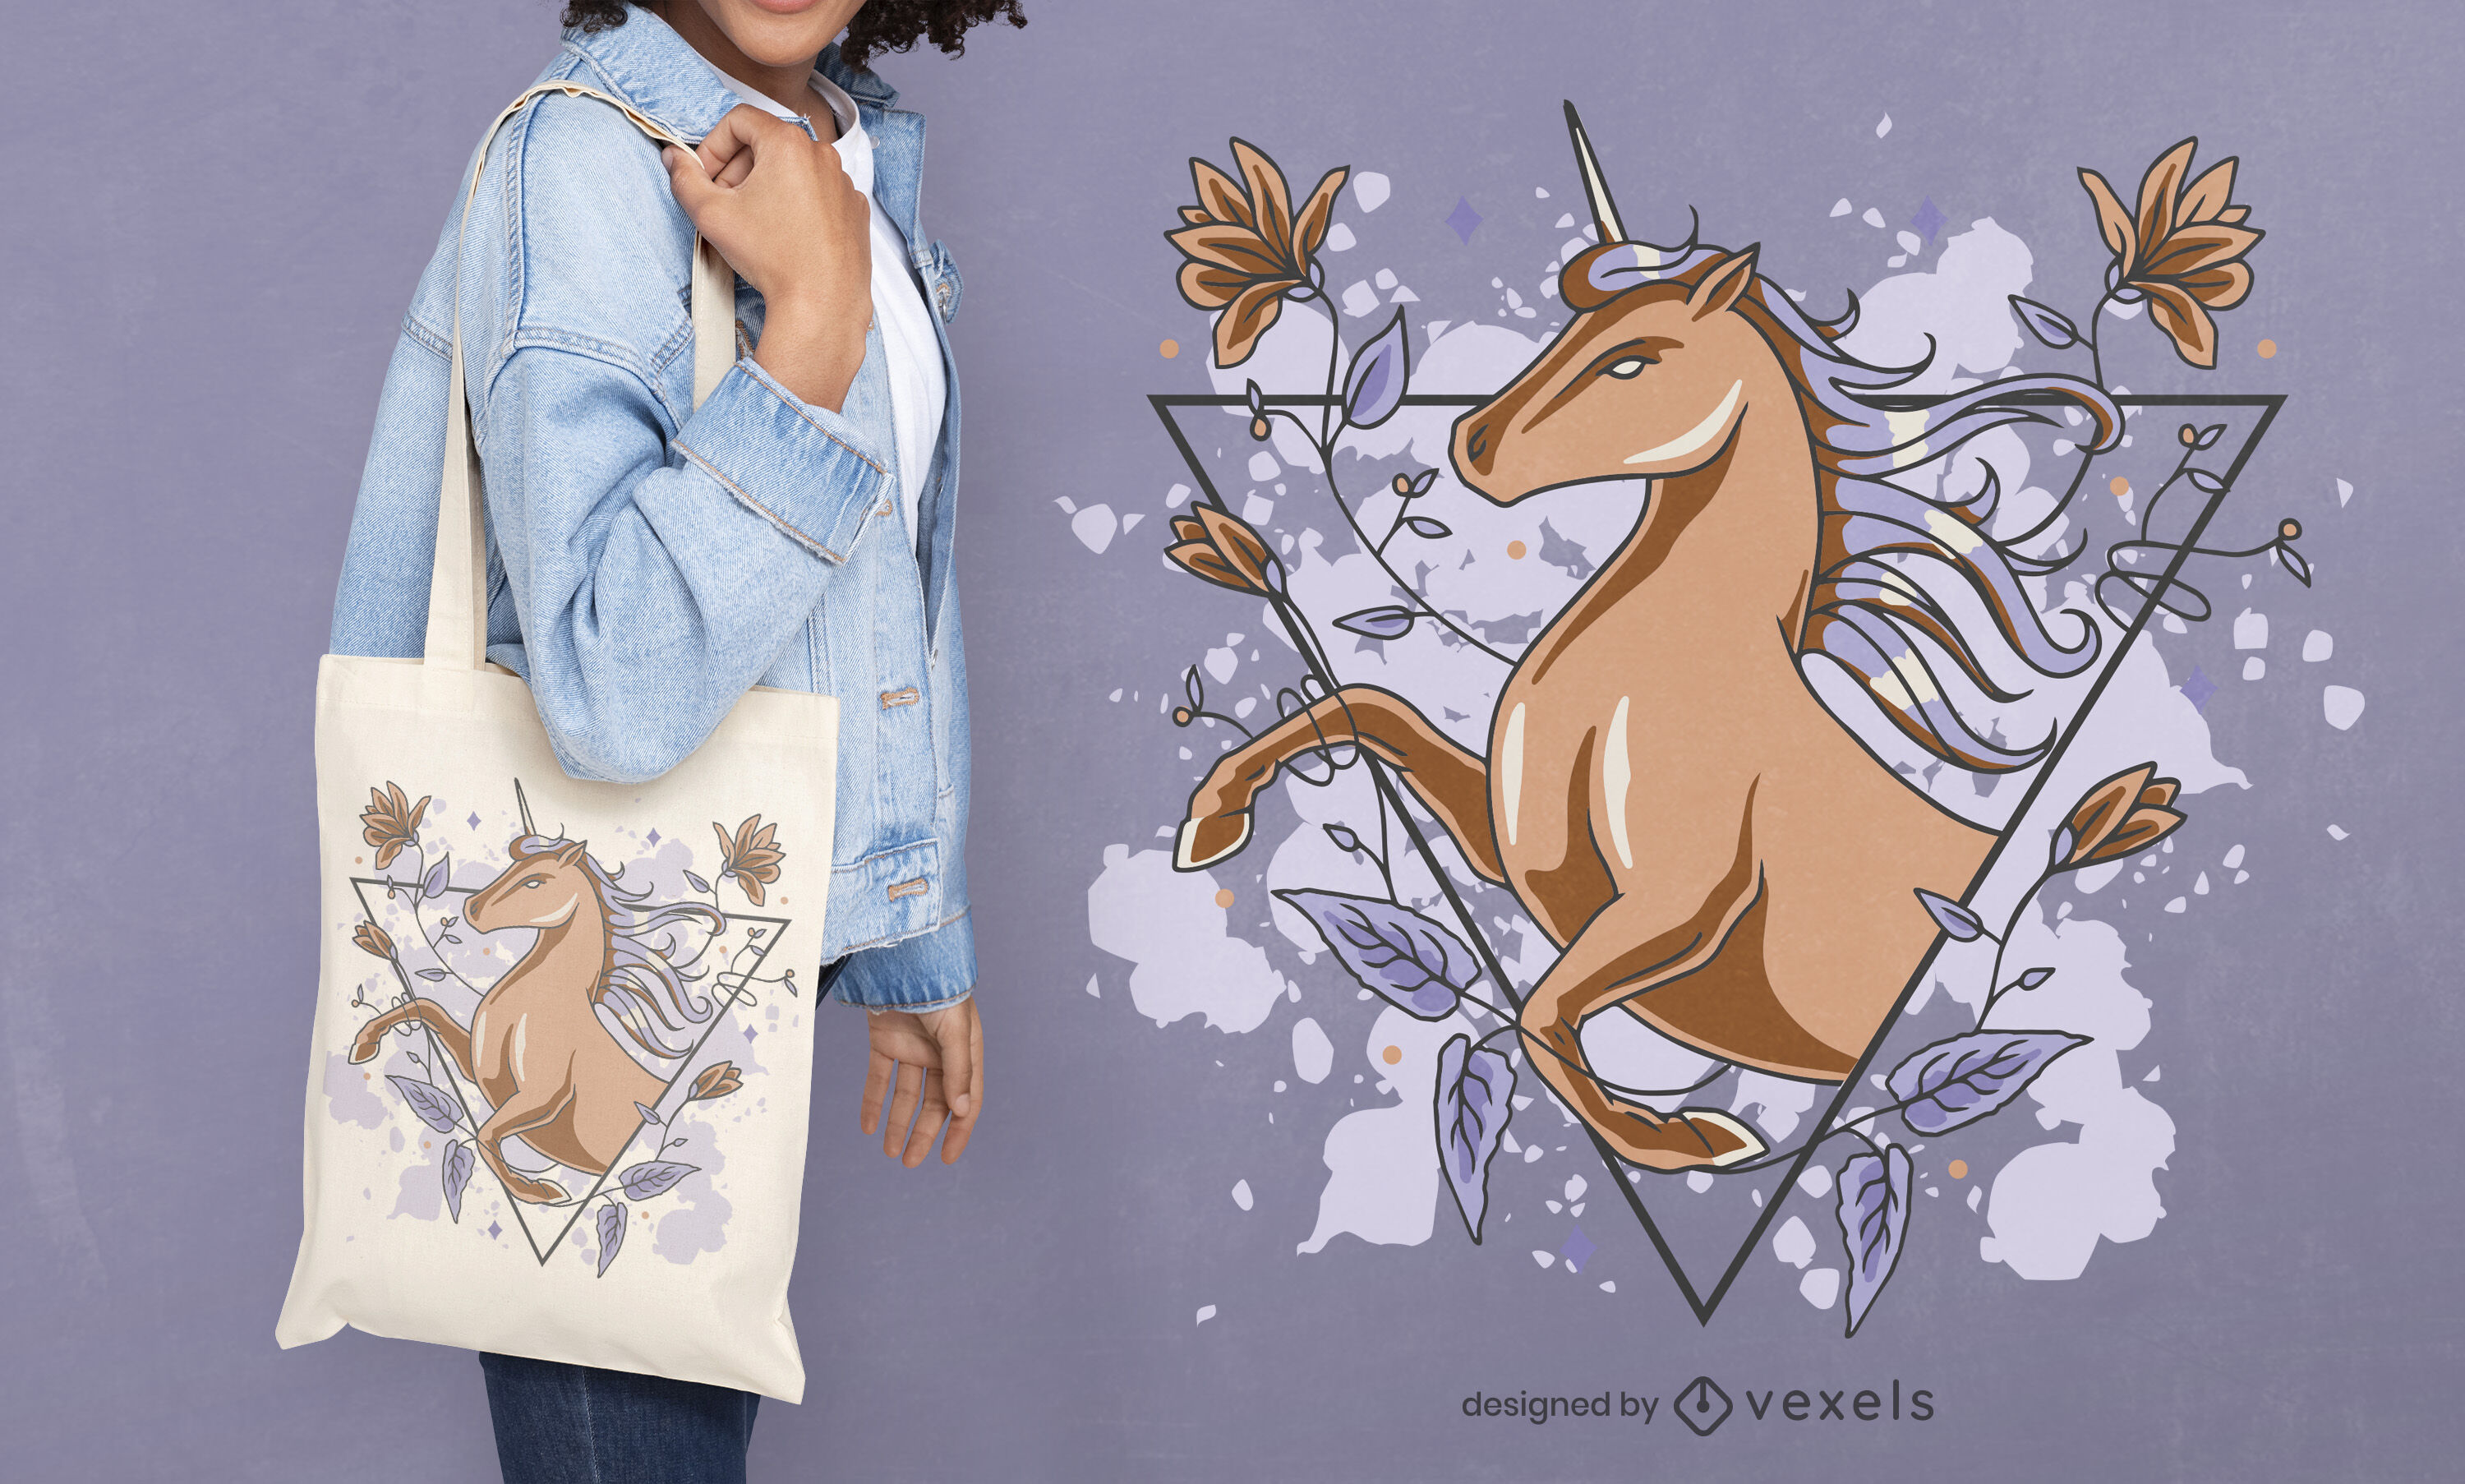 Magical unicorn and flowers tote bag deisgn